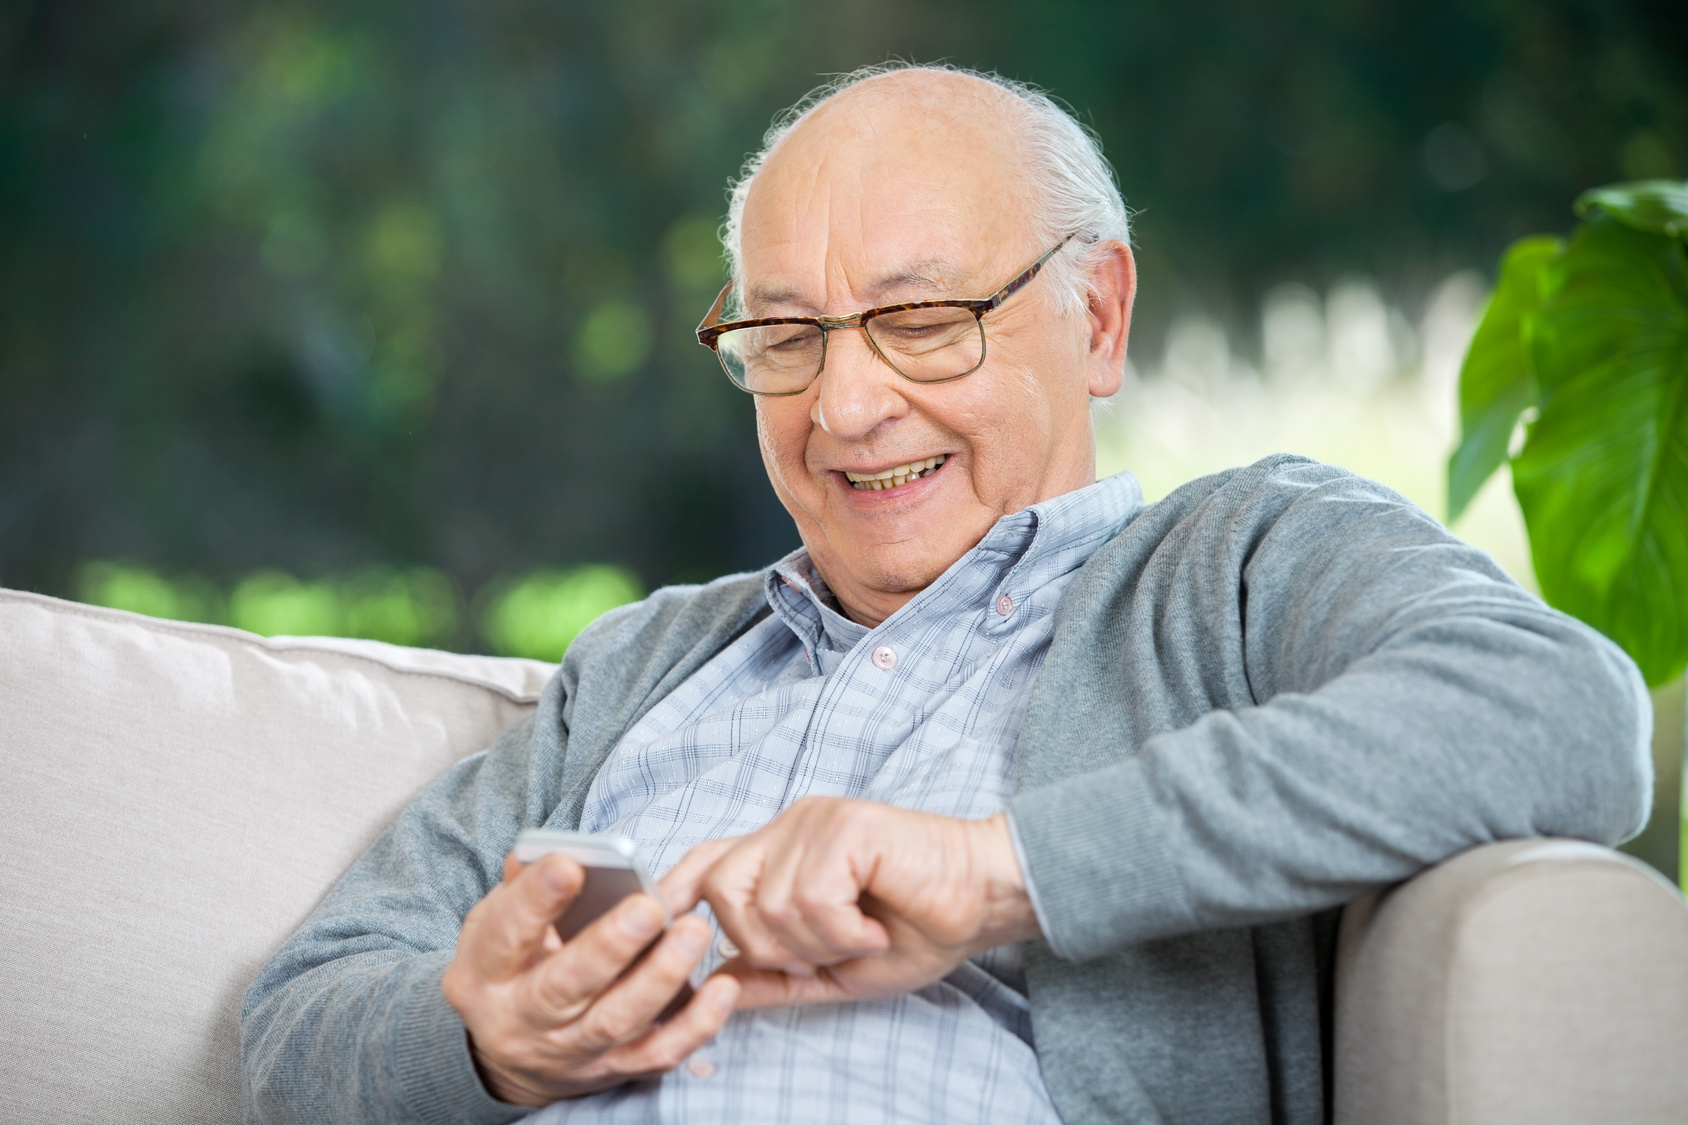 Elderly-Man-Using-Phone-Happy